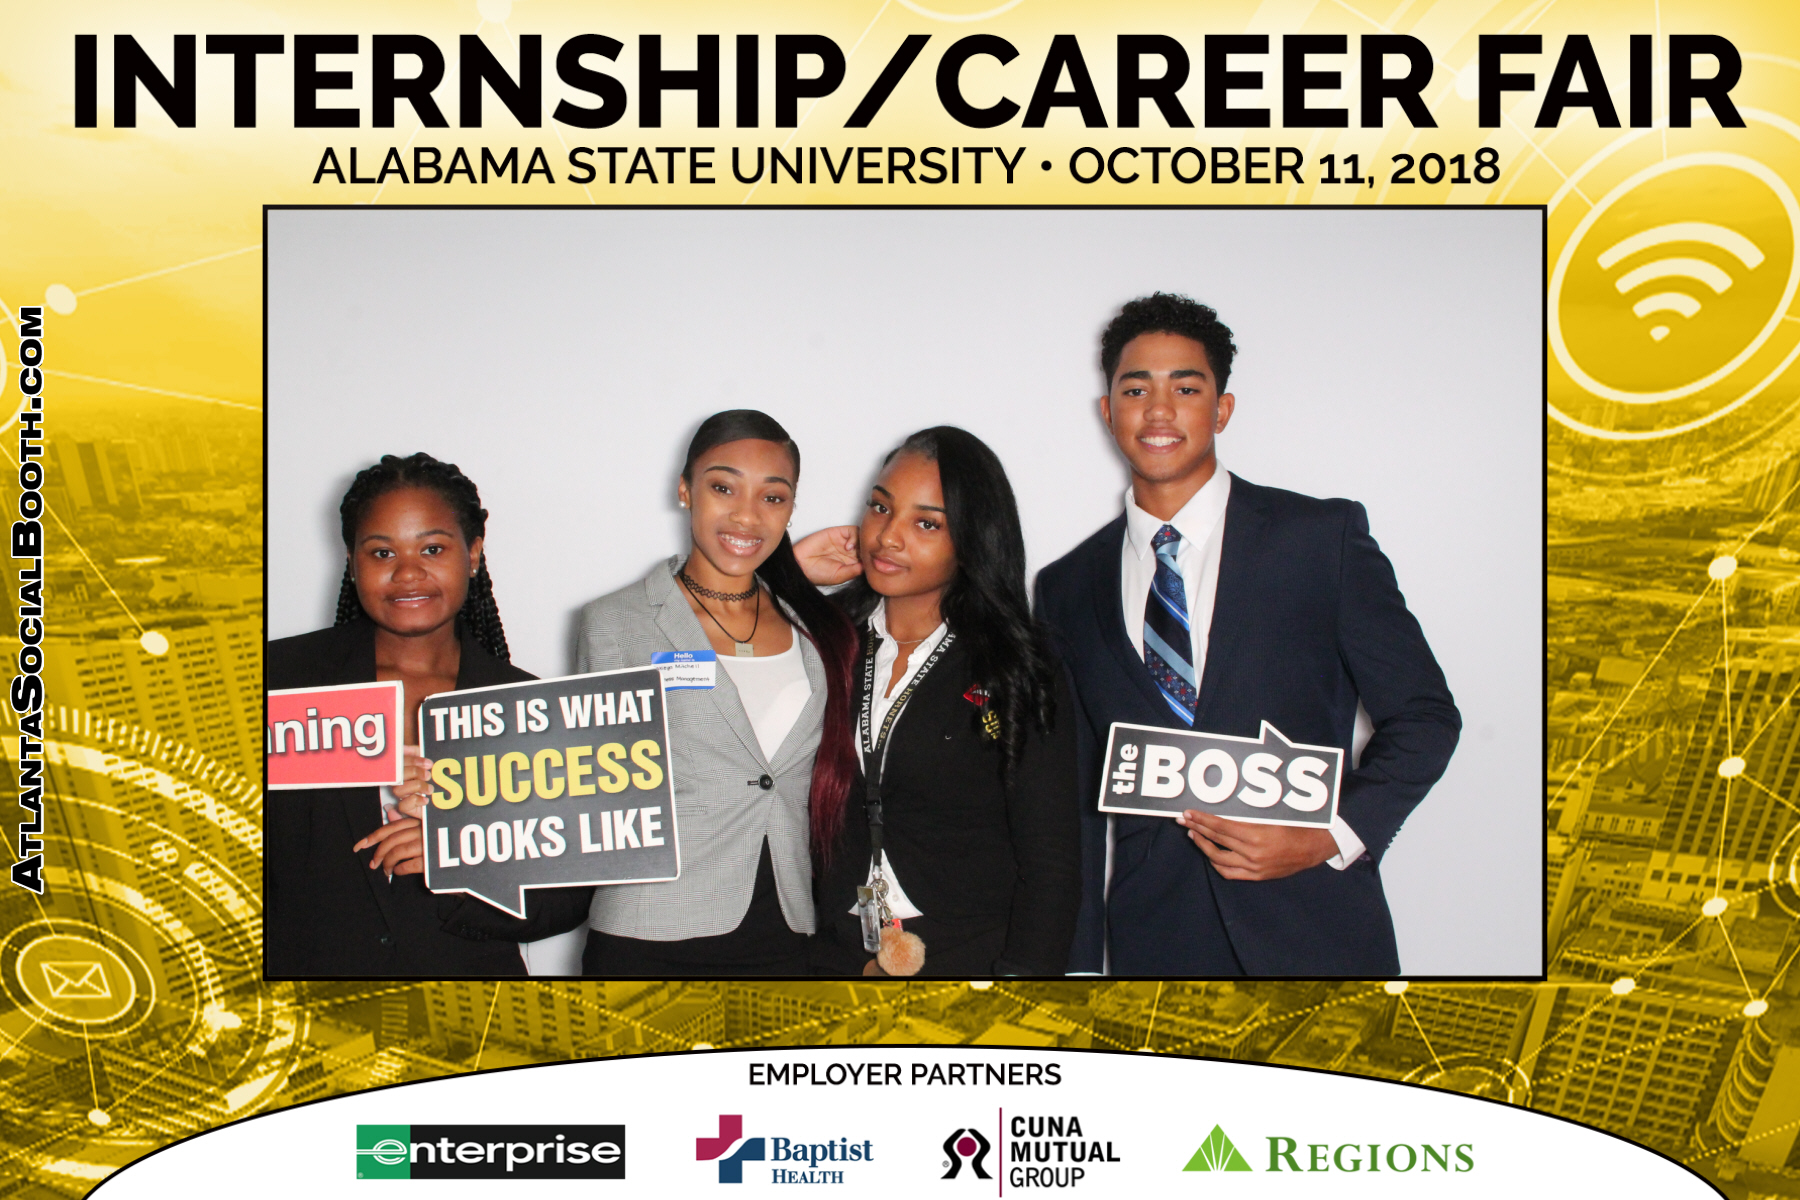 ASU Internship & Career Fair